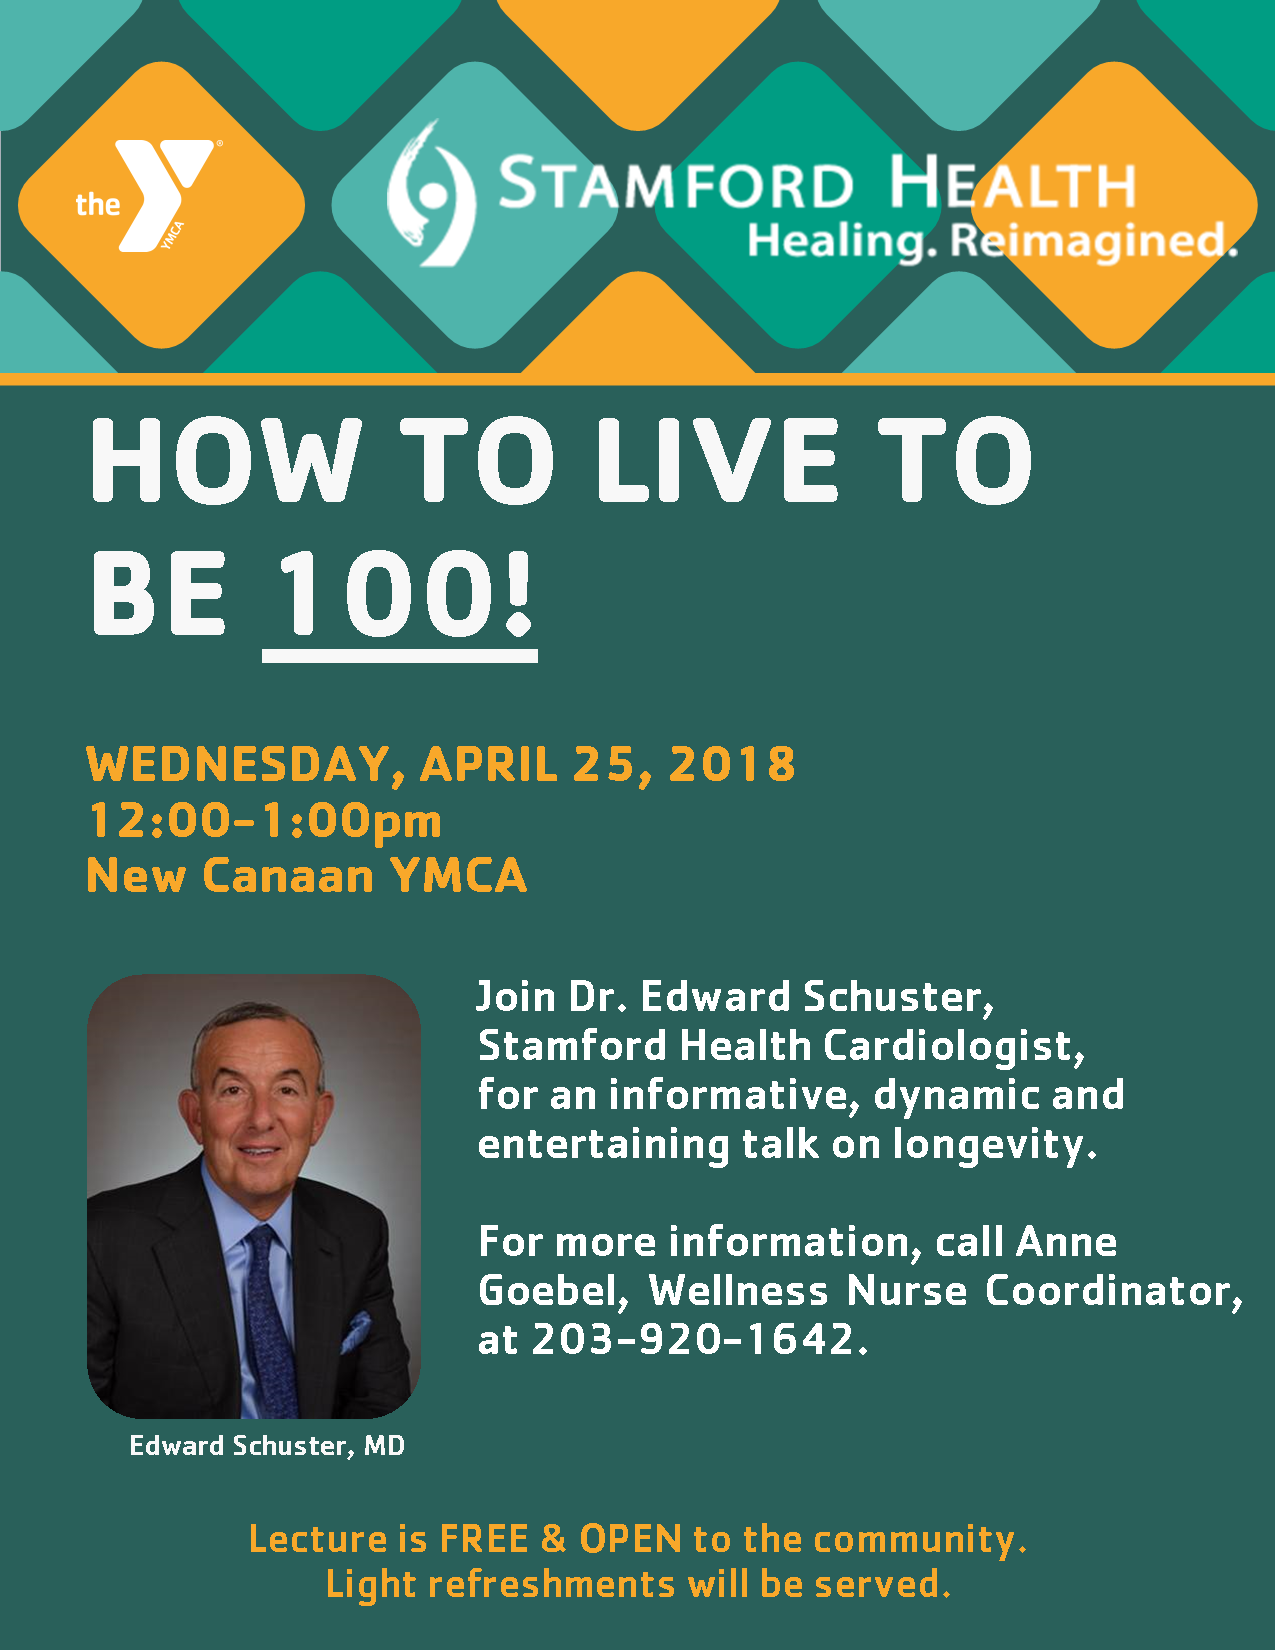 How to Live to be 100! @ New Canaan YMCA, Wagner Room